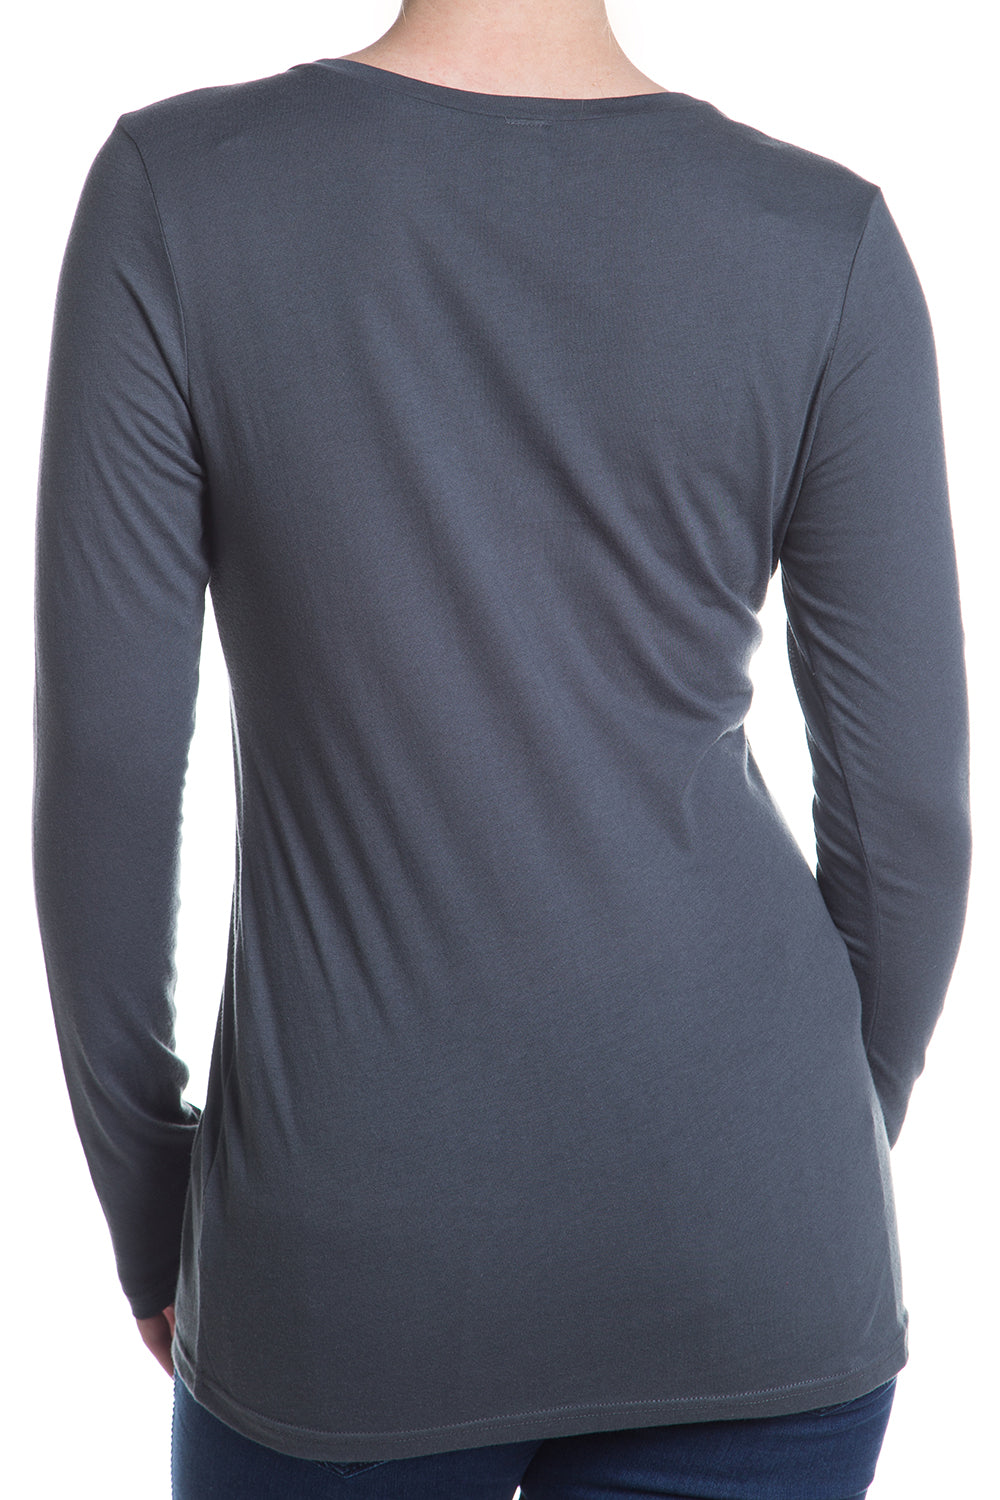 Type 2 Charcoal Soft-T Long